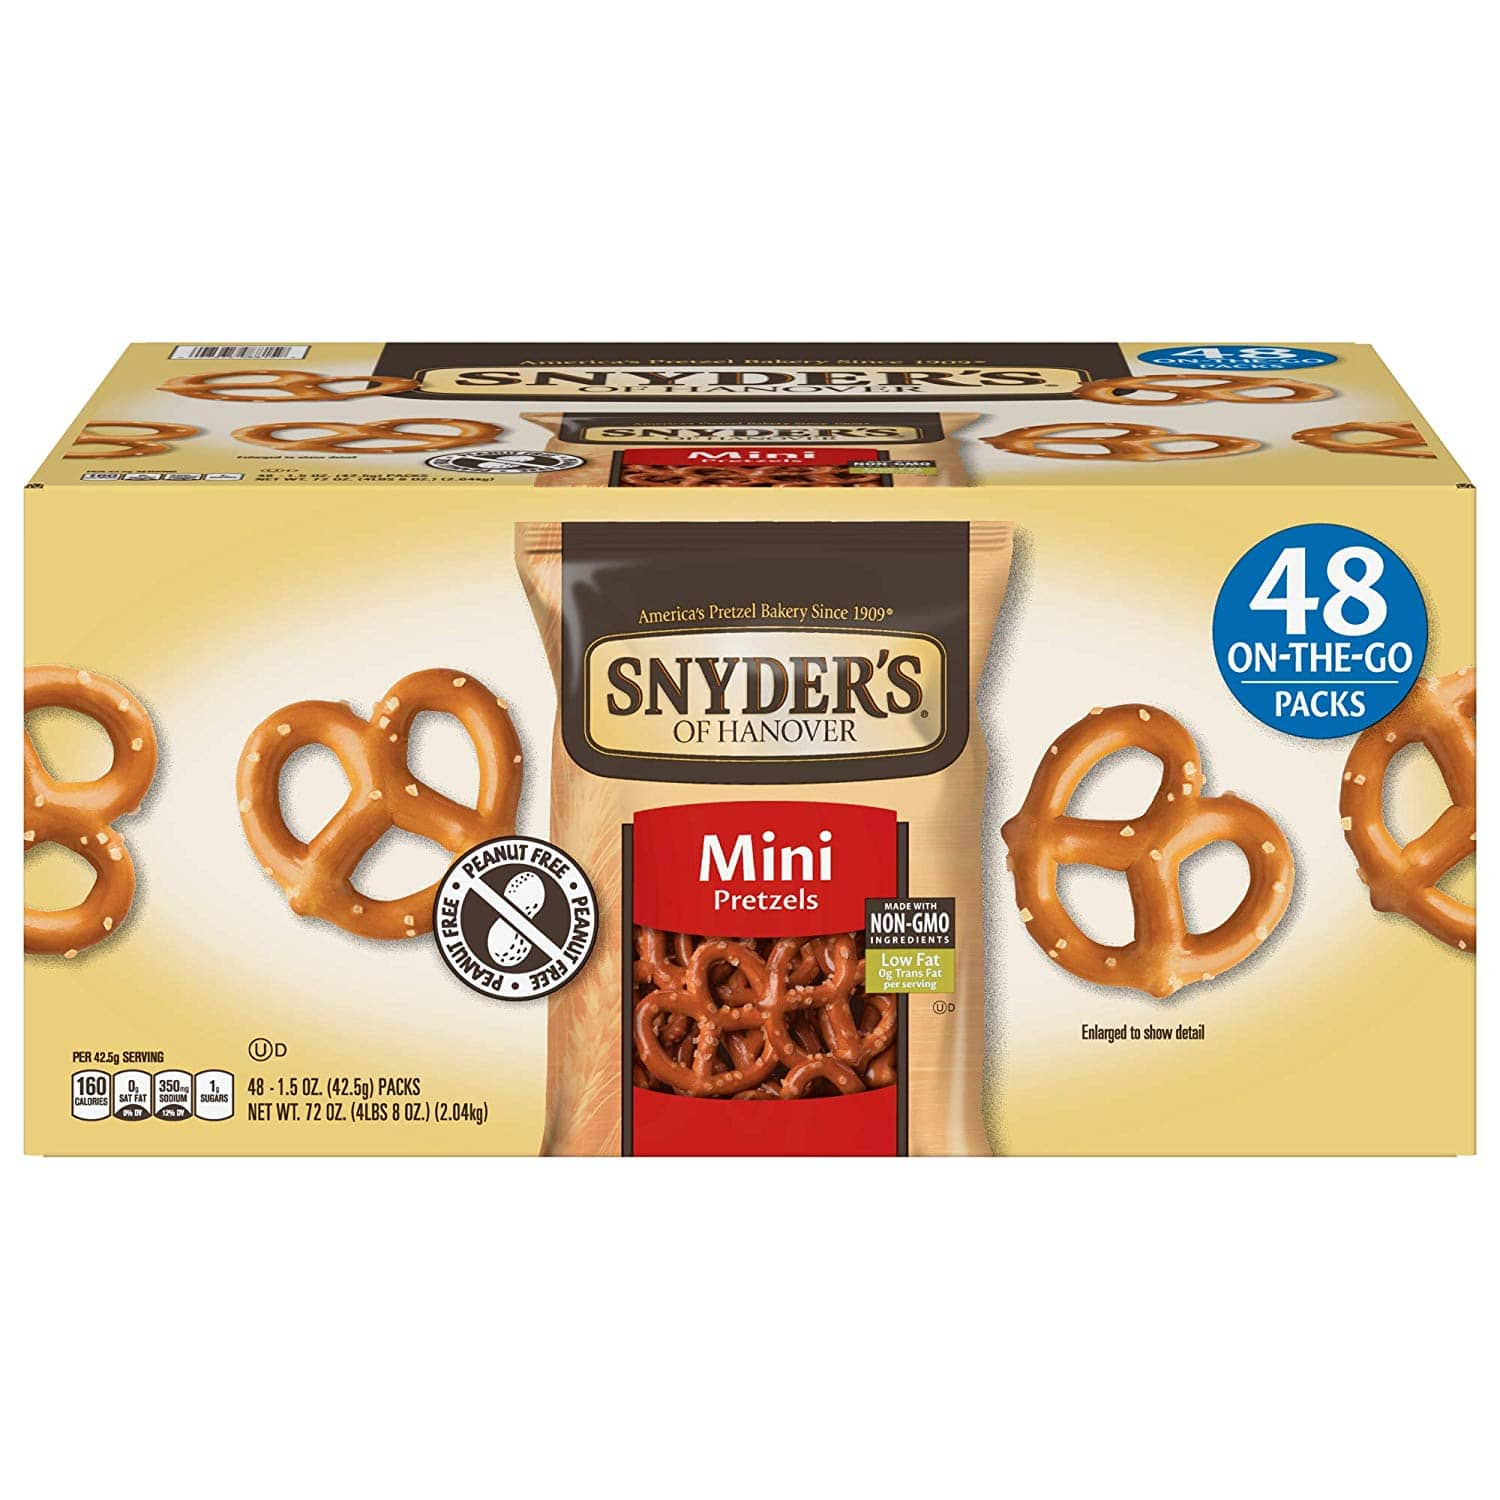 48-Ct Single Serve 1.5-Oz Snyder's of Hanover Mini Pretzels $9 + free shipping with S&S